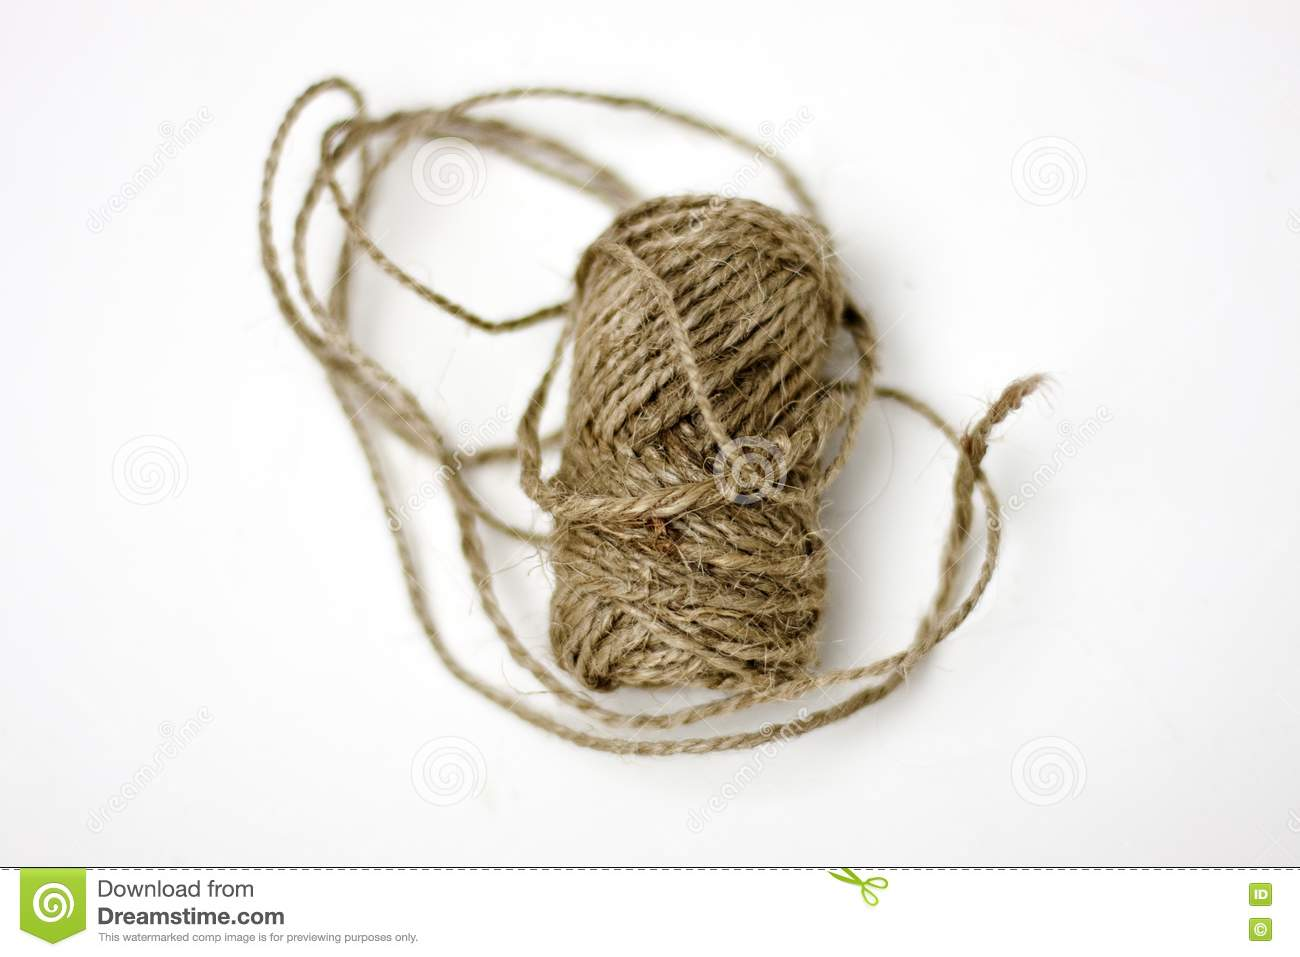 the piece of string The piece of string guy de maupassant vocab s urmounted- to get on top of,  prevail p 1 clamorous- vigorous in demands or complaints loud.